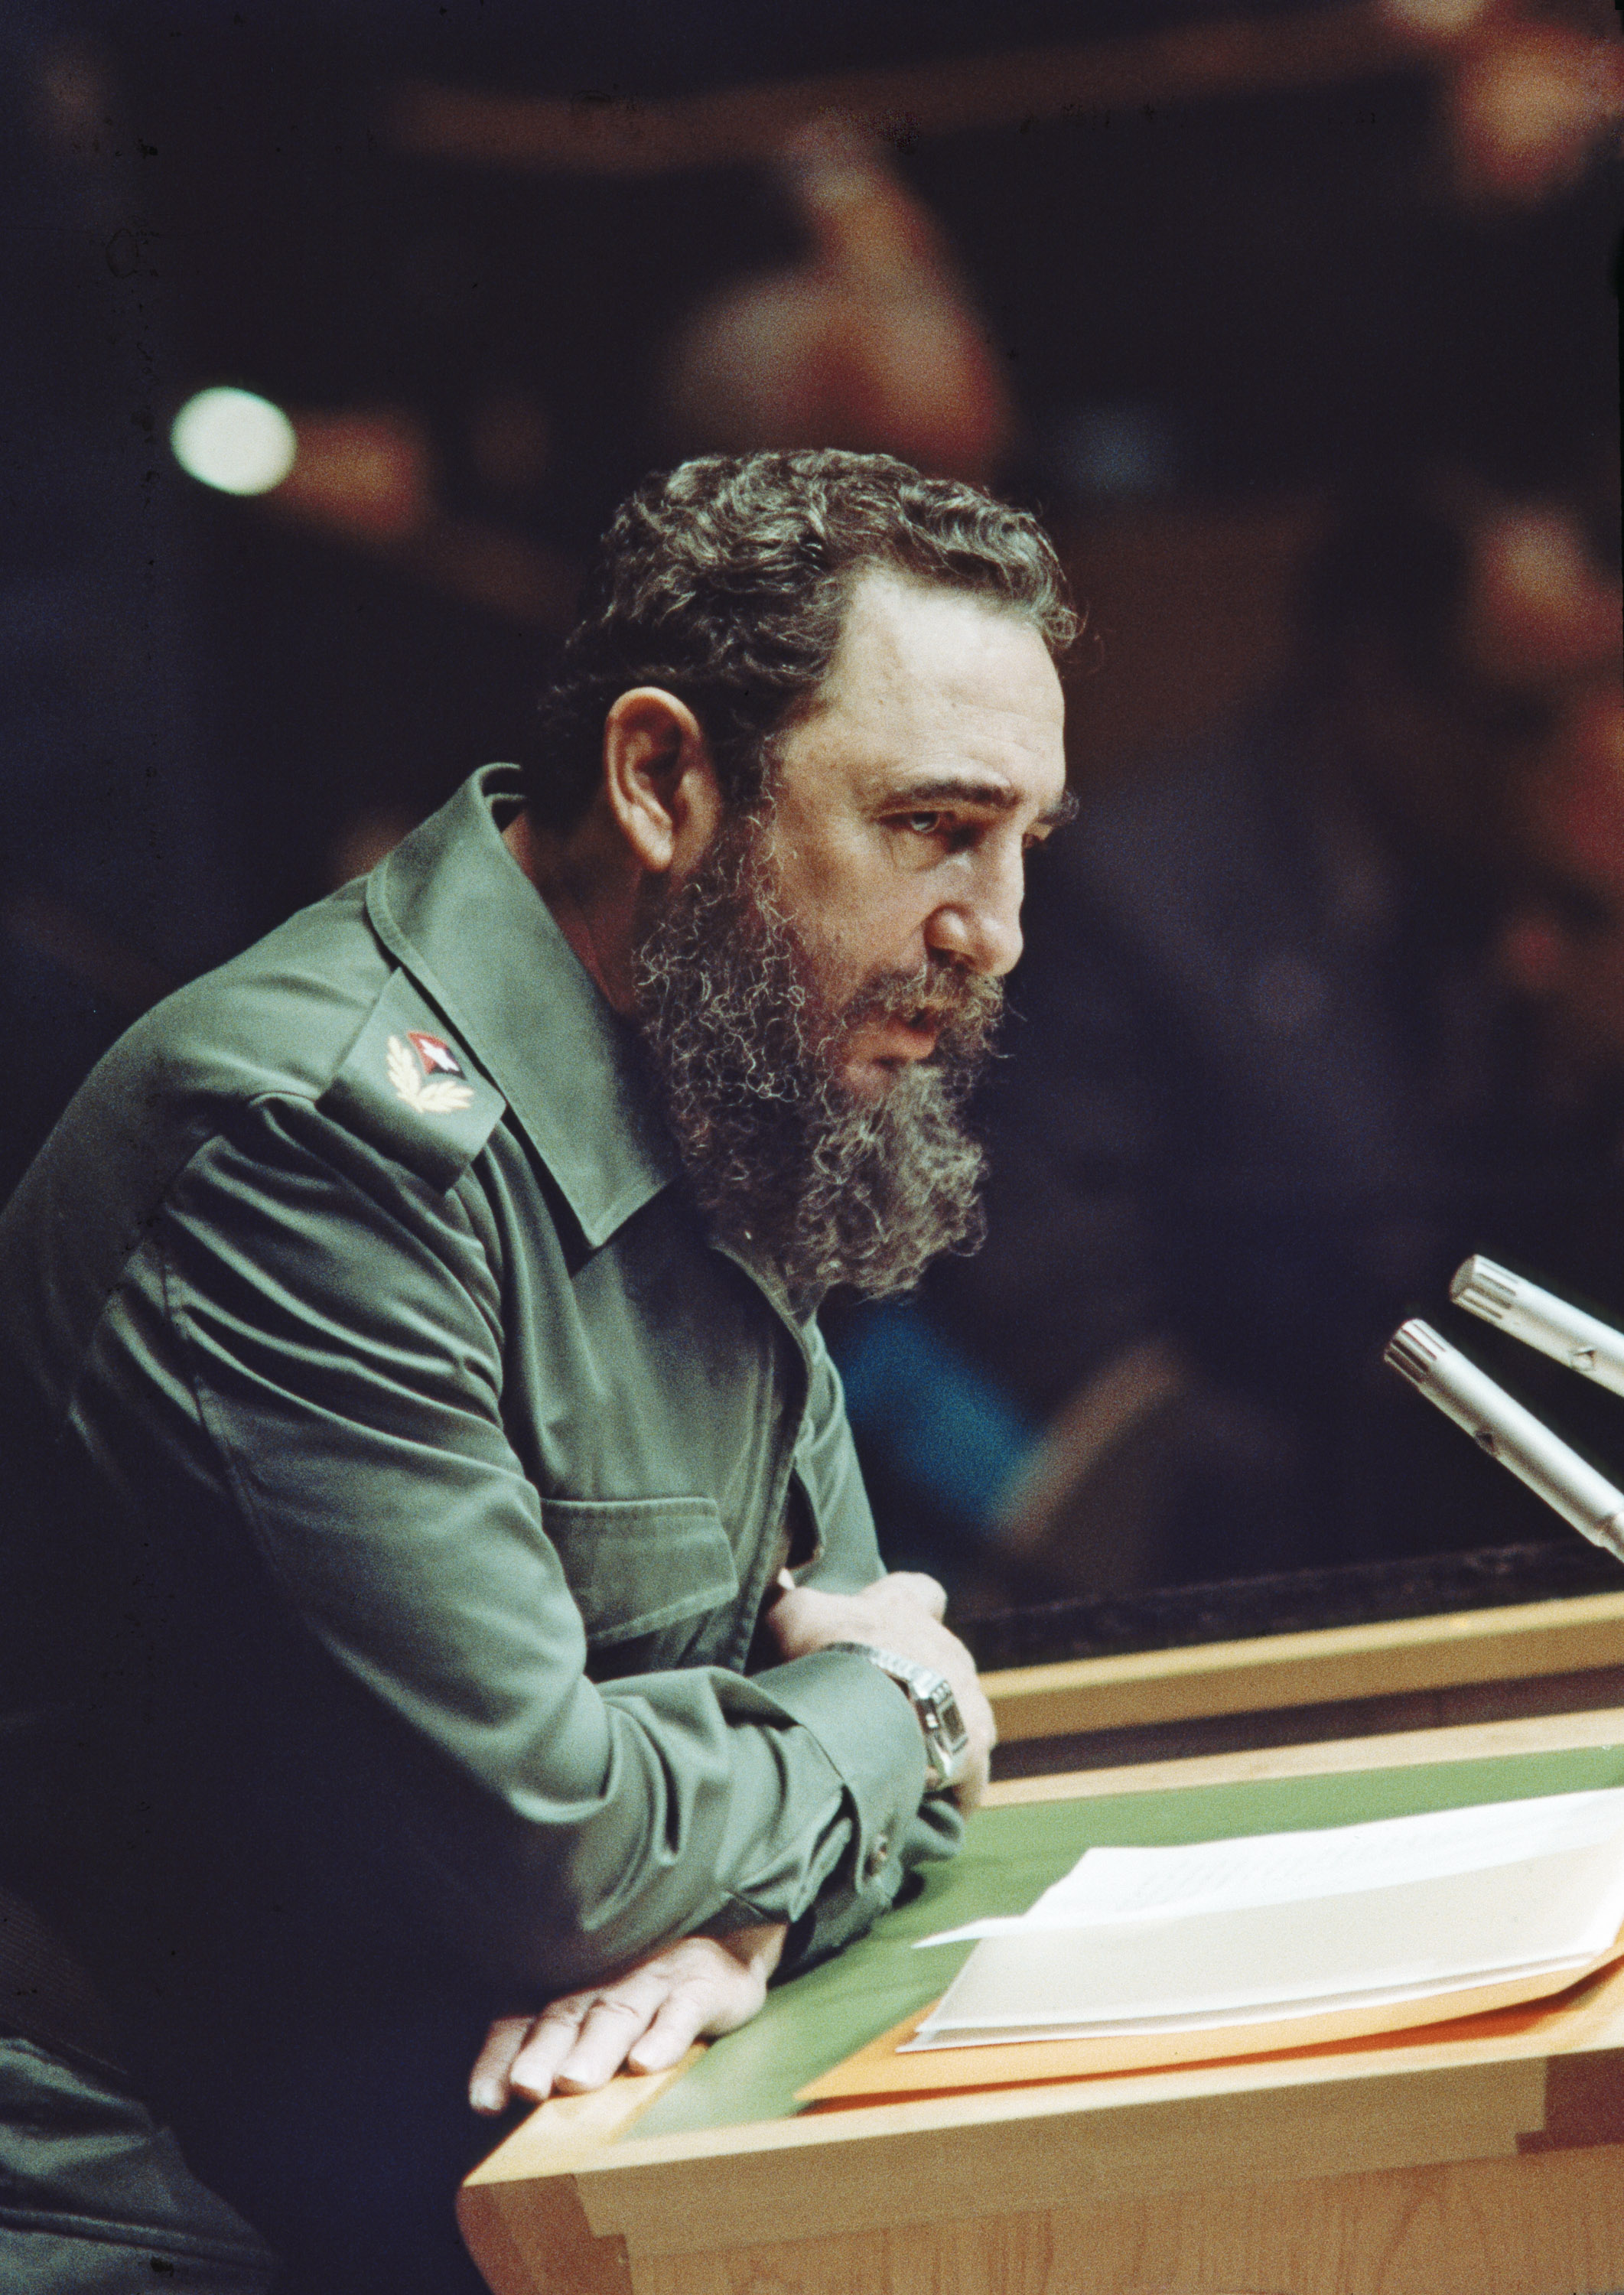 Developing World Honors Fidel Castro